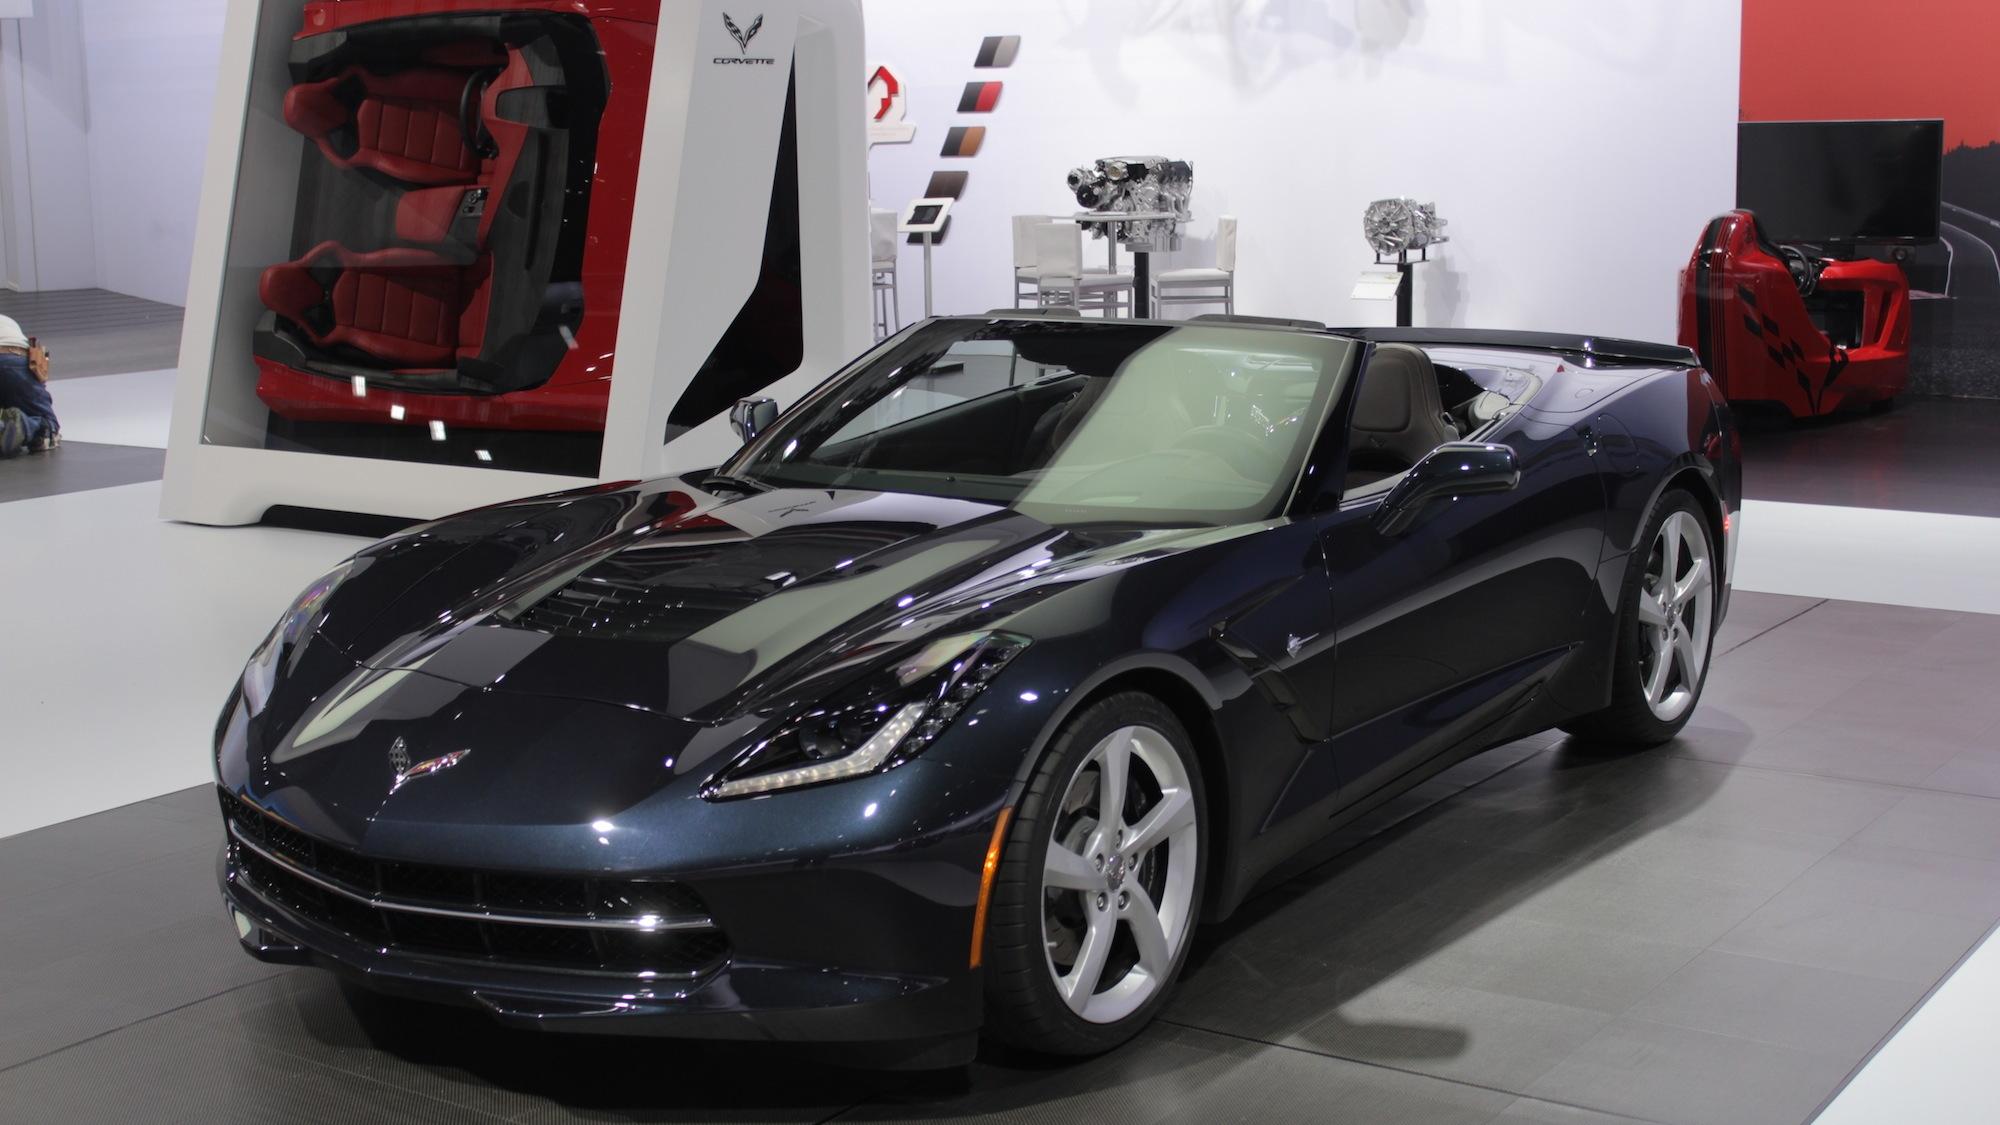 2014 Chevrolet Corvette Stingray Convertible, 2013 New York Auto Show